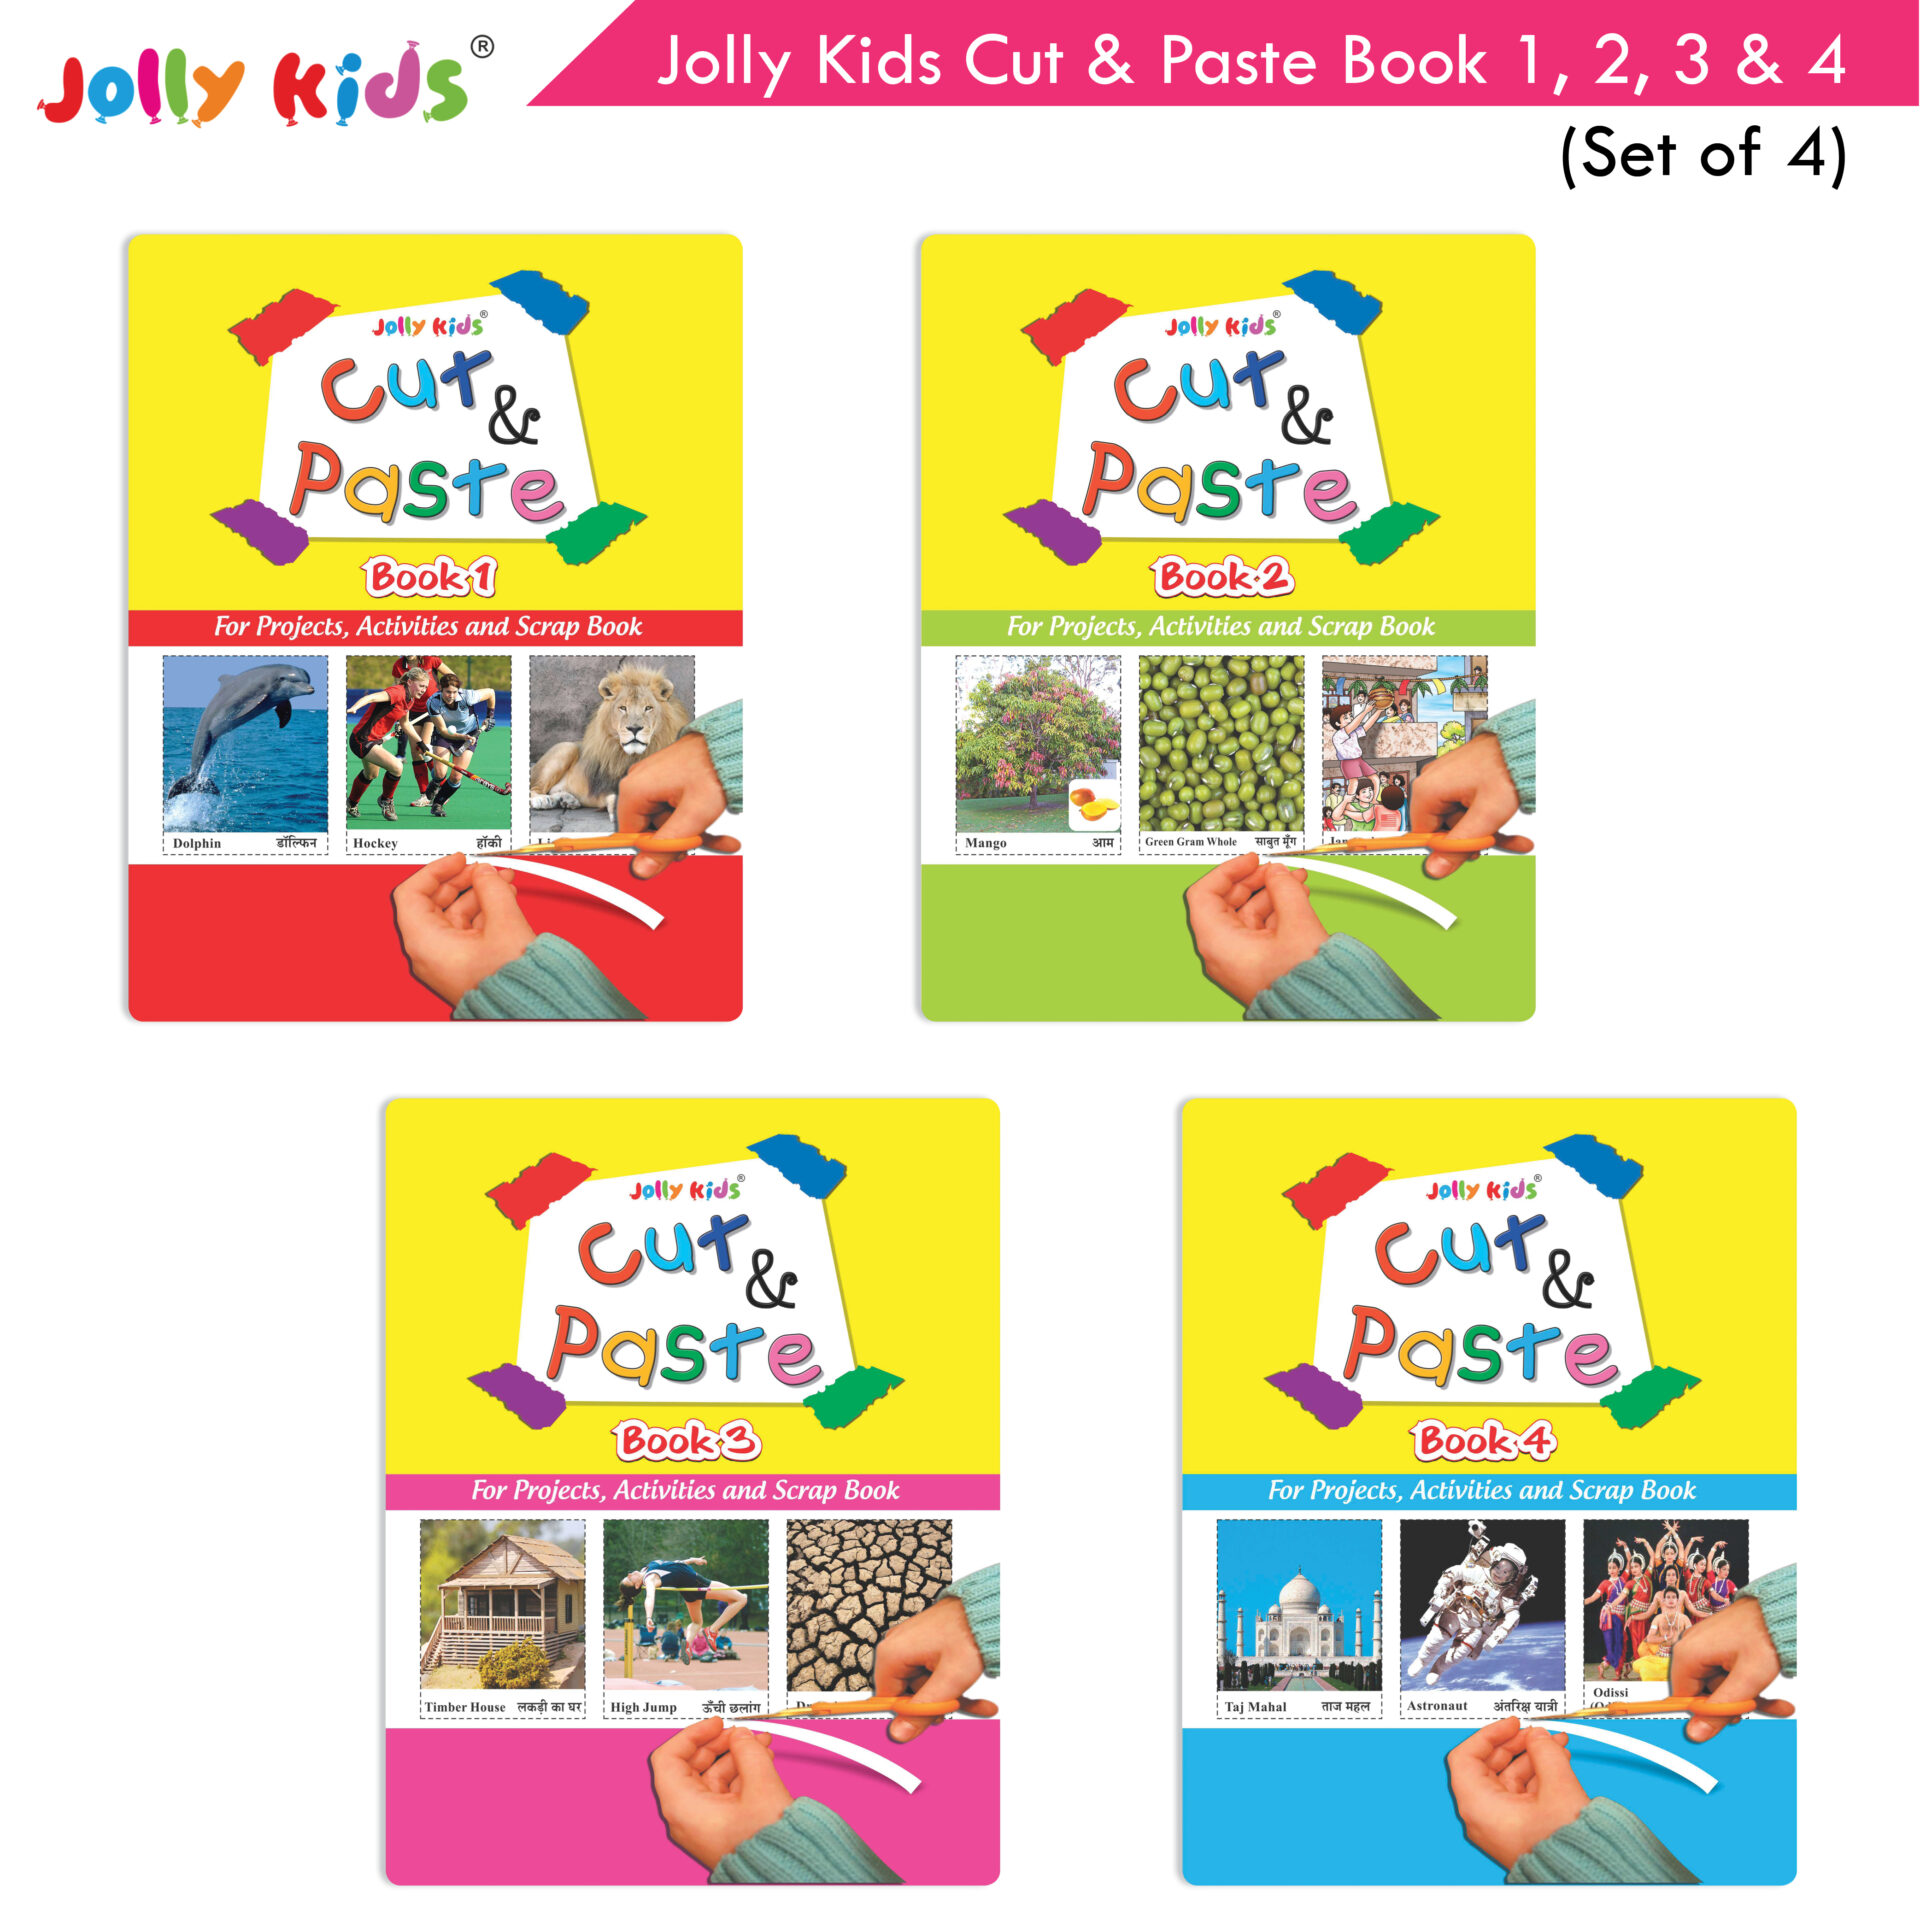 Jolly Kids Cut and Paste Book 1 2 3 and 4 Set of 4 1